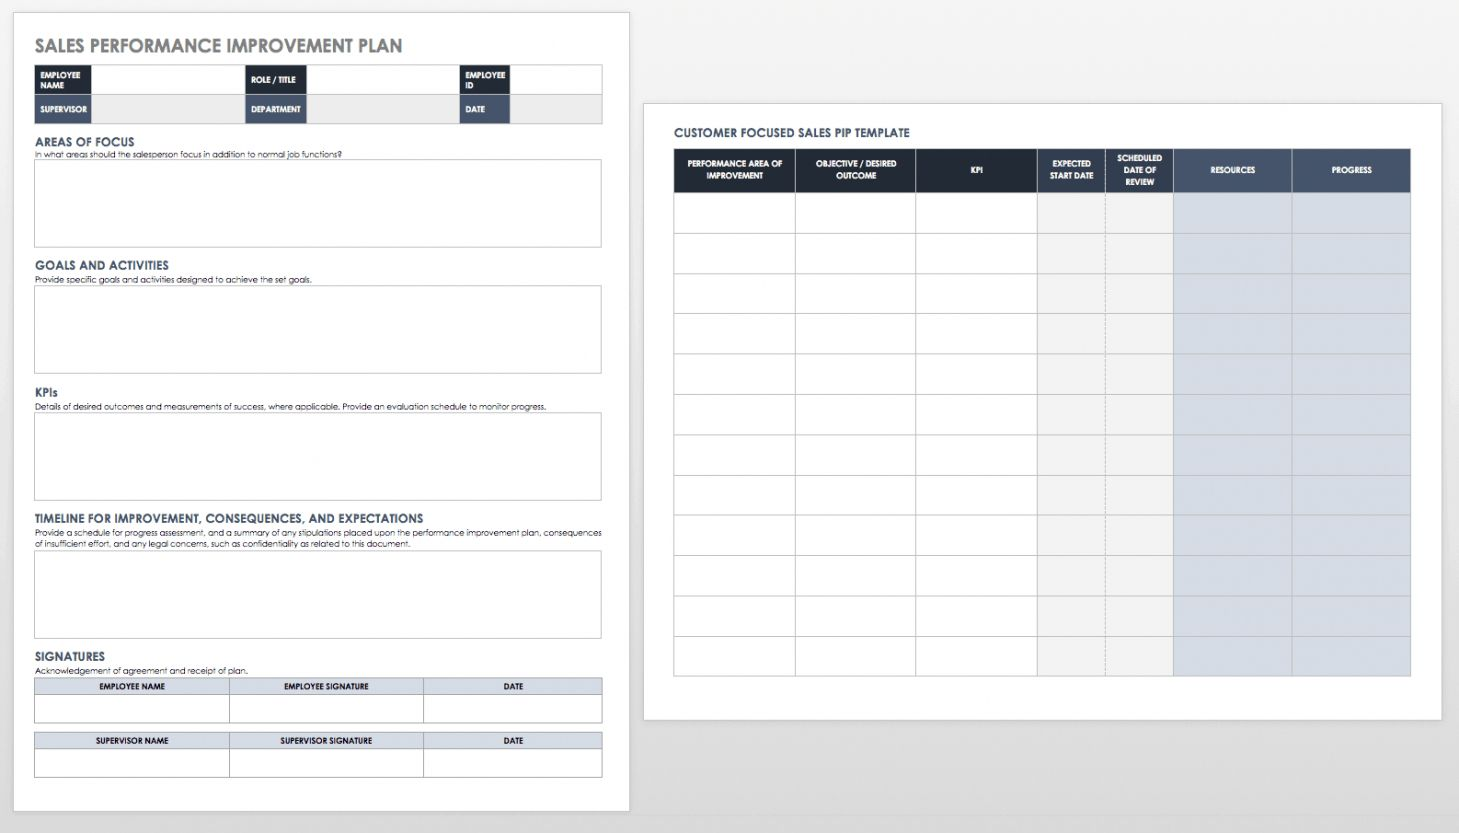 Explore Our Image of Business Improvement Plan Template